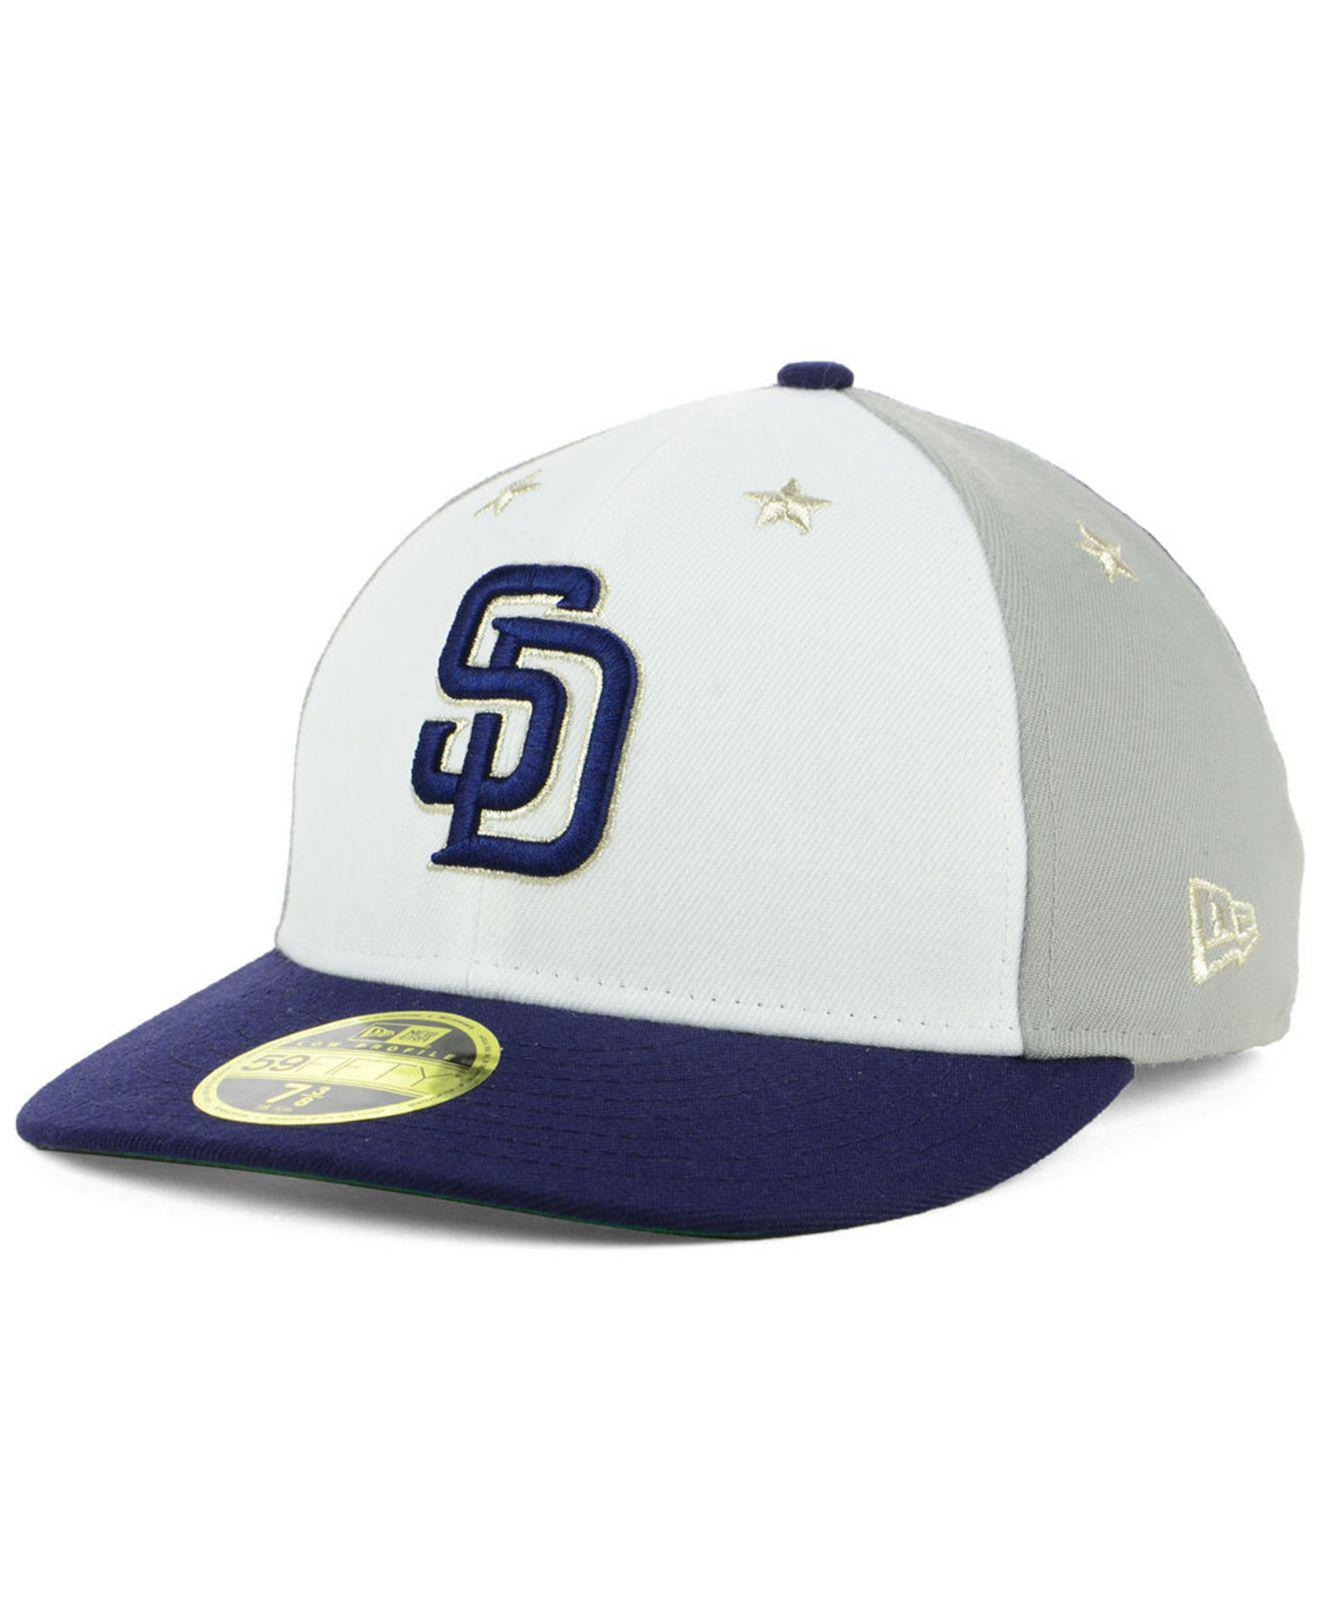 innovative design 3af6c 2fefd ... france san diego padres all star game patch low profile 59fifty fitted  cap 2018. view